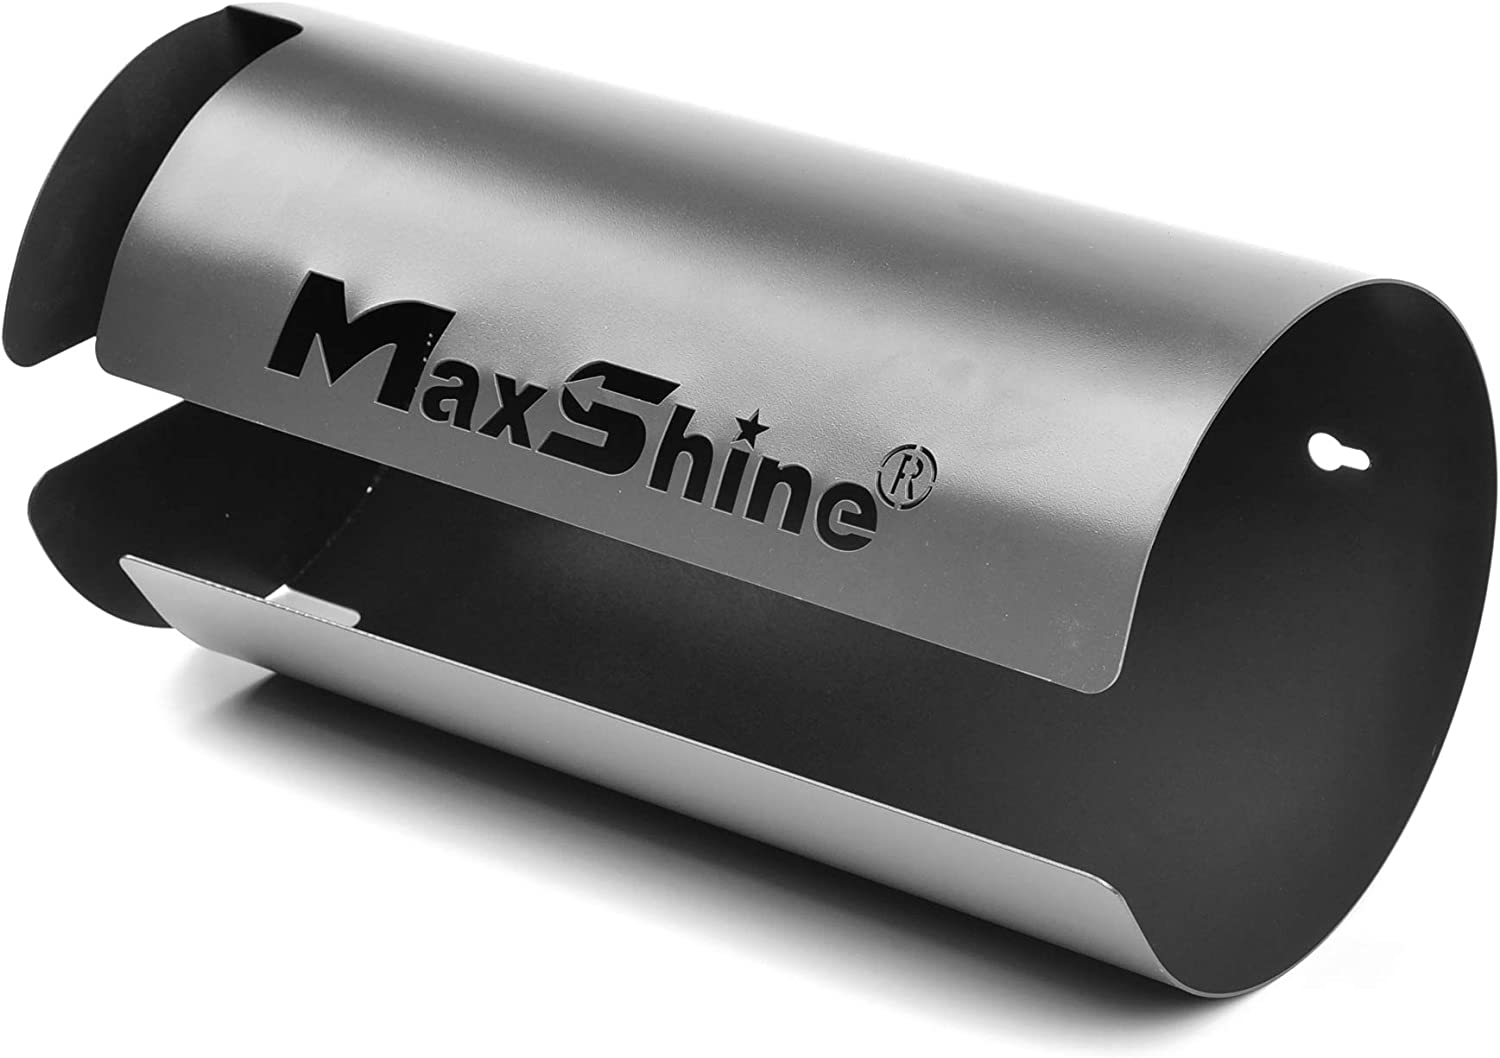 Dia: 5 Maxshine Iron Foam Pad Holder//Rack Series-Specially Designed for Placing Foam Pads